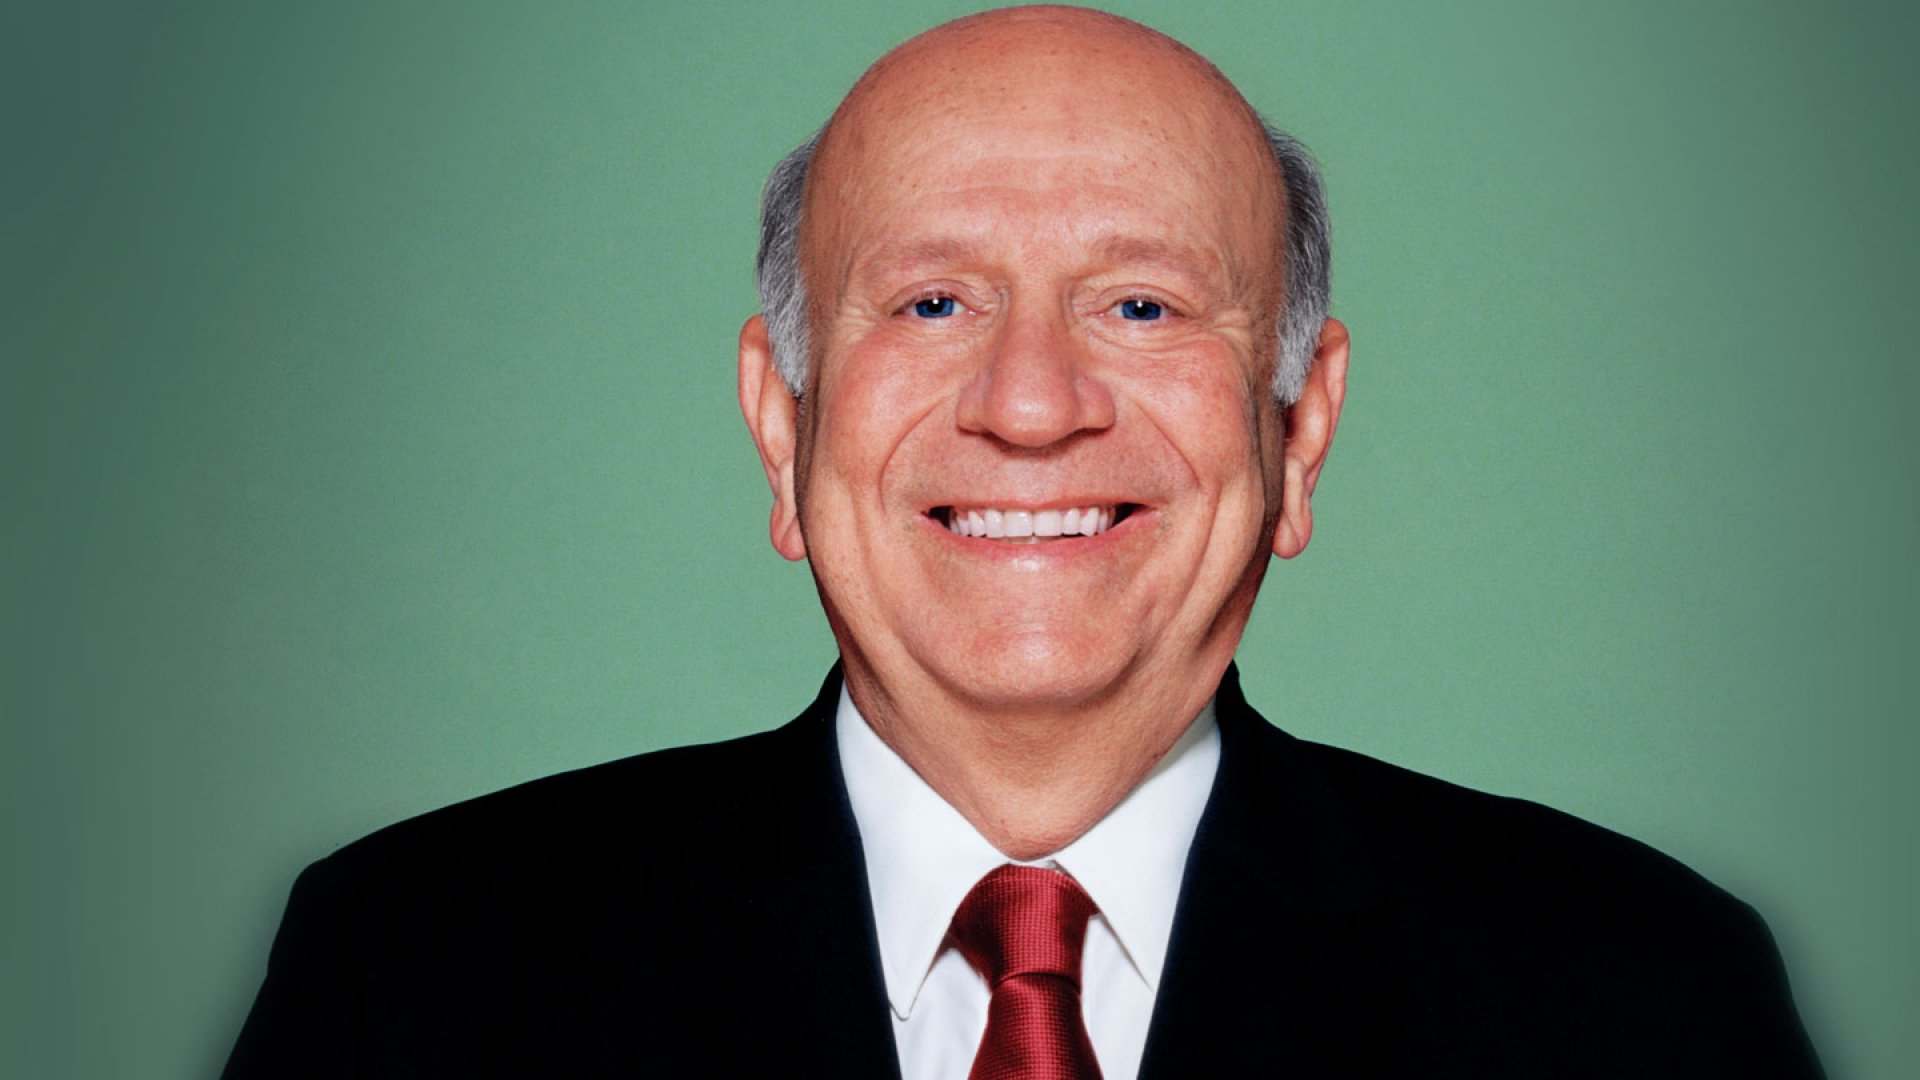 Business and Breakfast: The Habits That Fuel Norm Brodsky